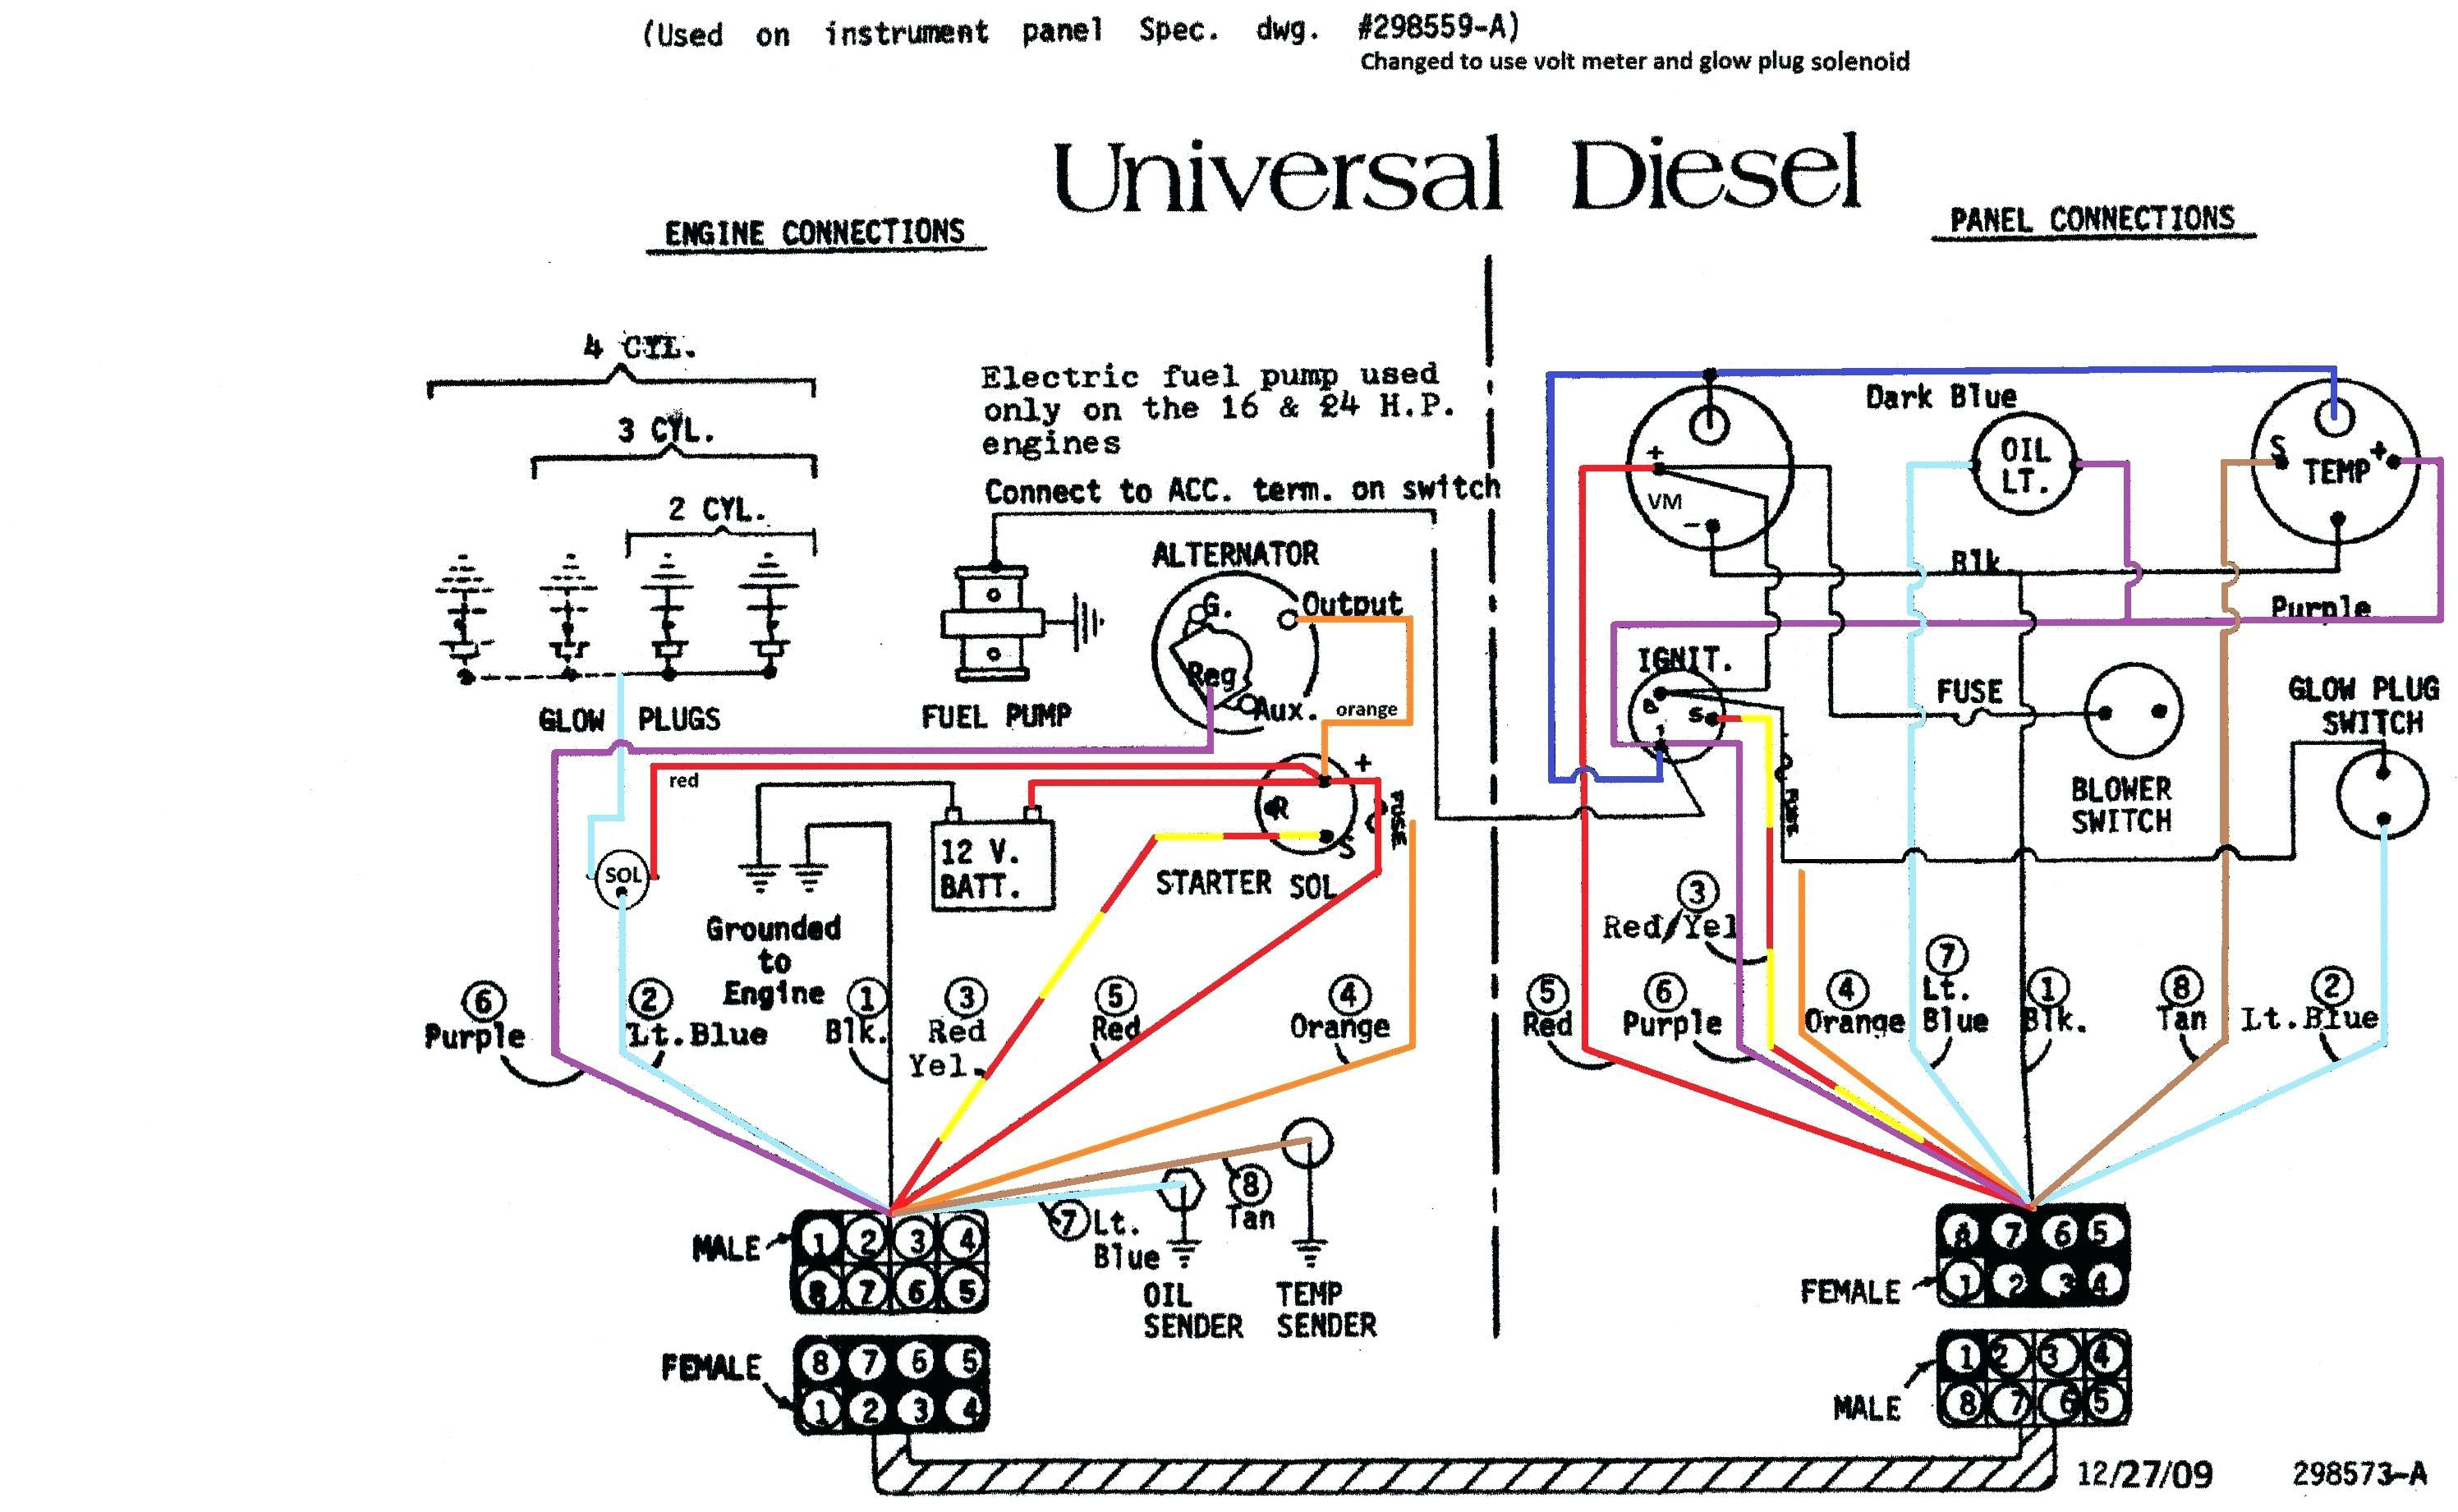 Chevy Trailer Wiring Diagram - Wiring Diagrams Hubs - 7 Way Trailer Plug Wiring Diagram Dodge